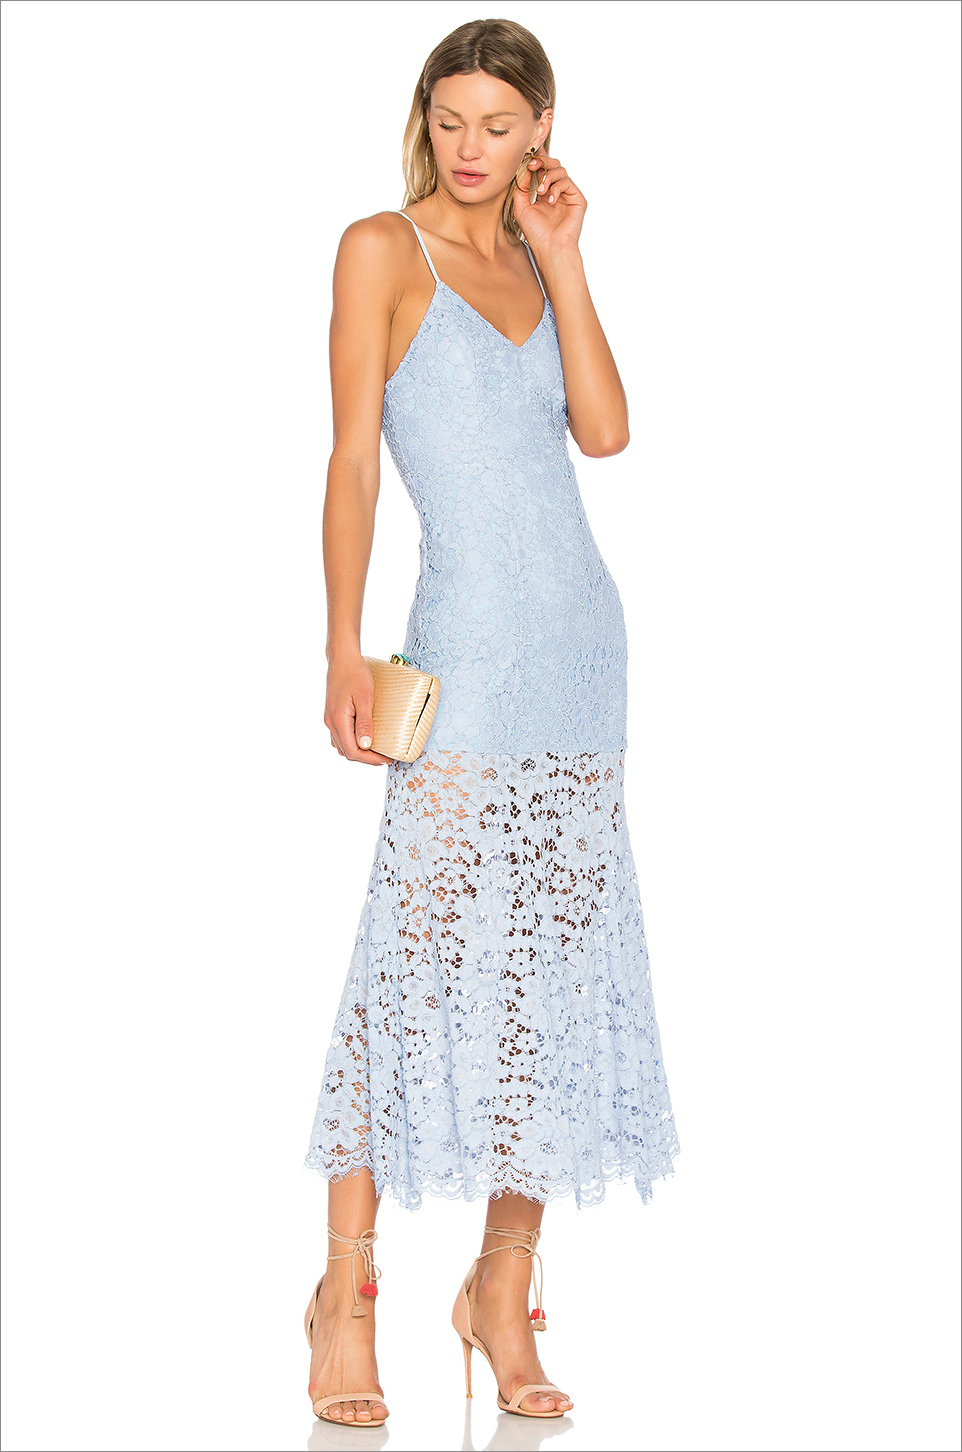 Wedding Ideas: 25 Wedding Guest Dresses You\'ll Love - Inside Weddings